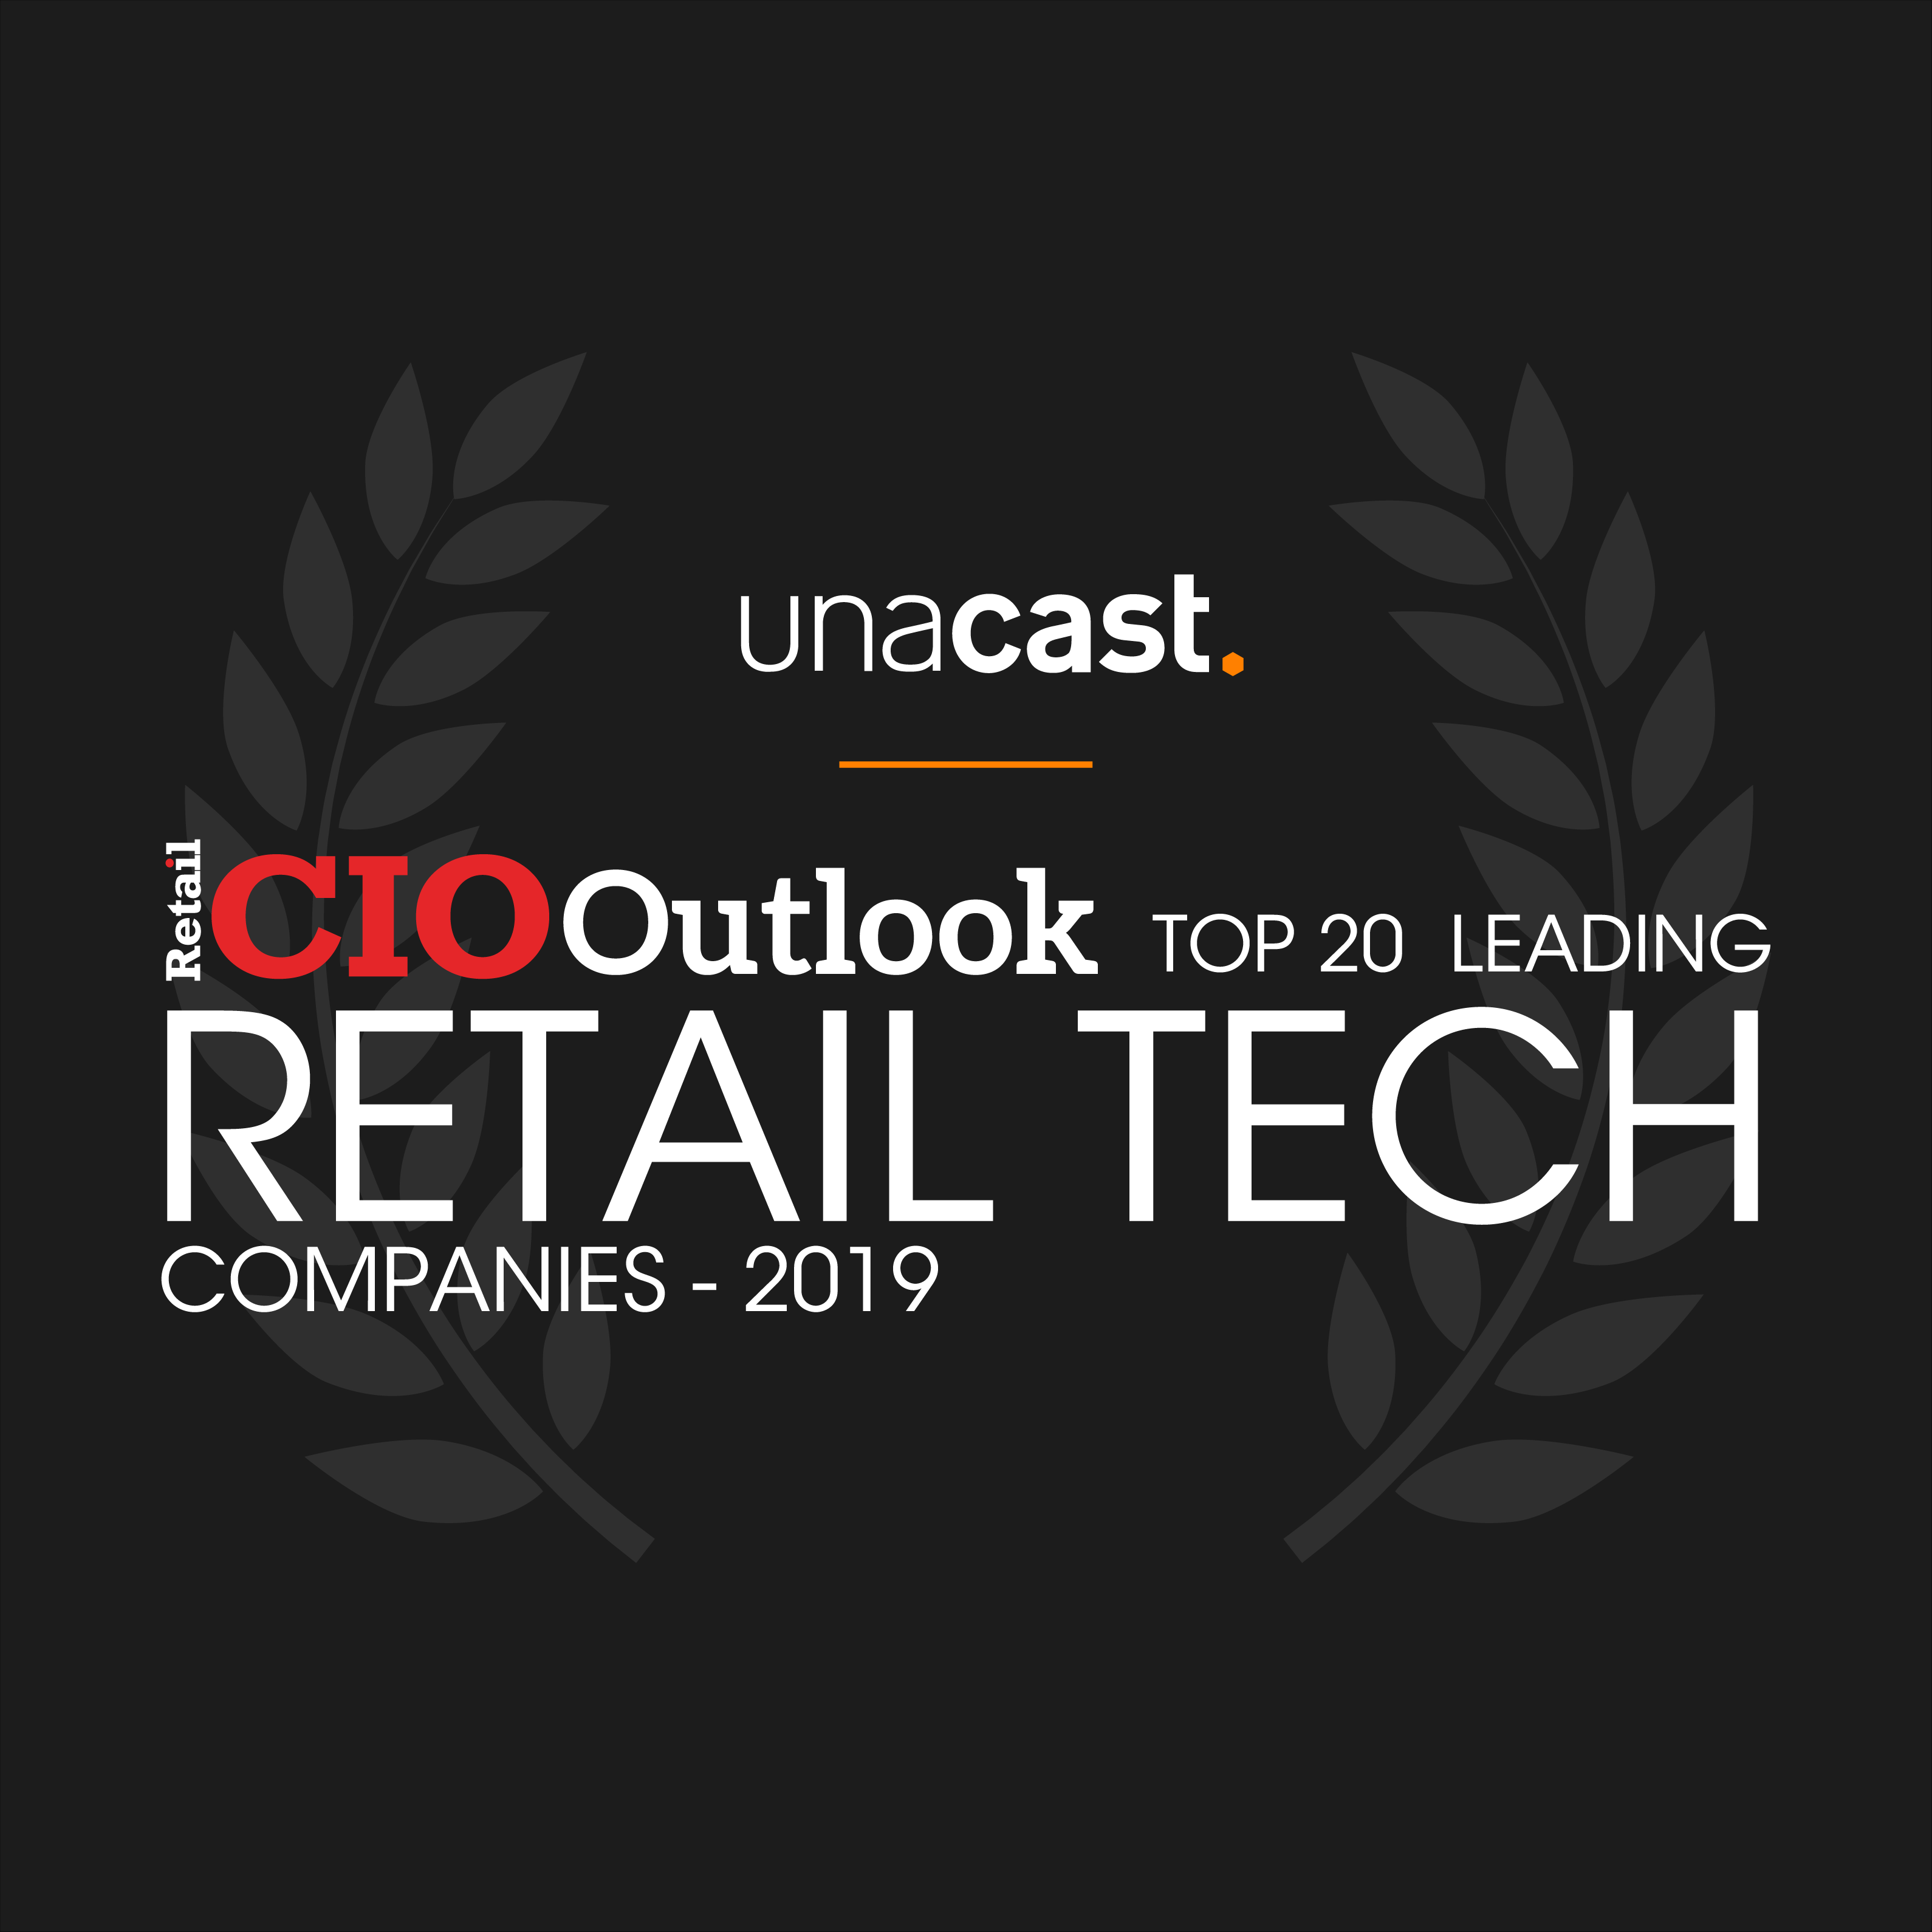 Unacast Wins Top 20 Leading Retail Tech Companies of 2019